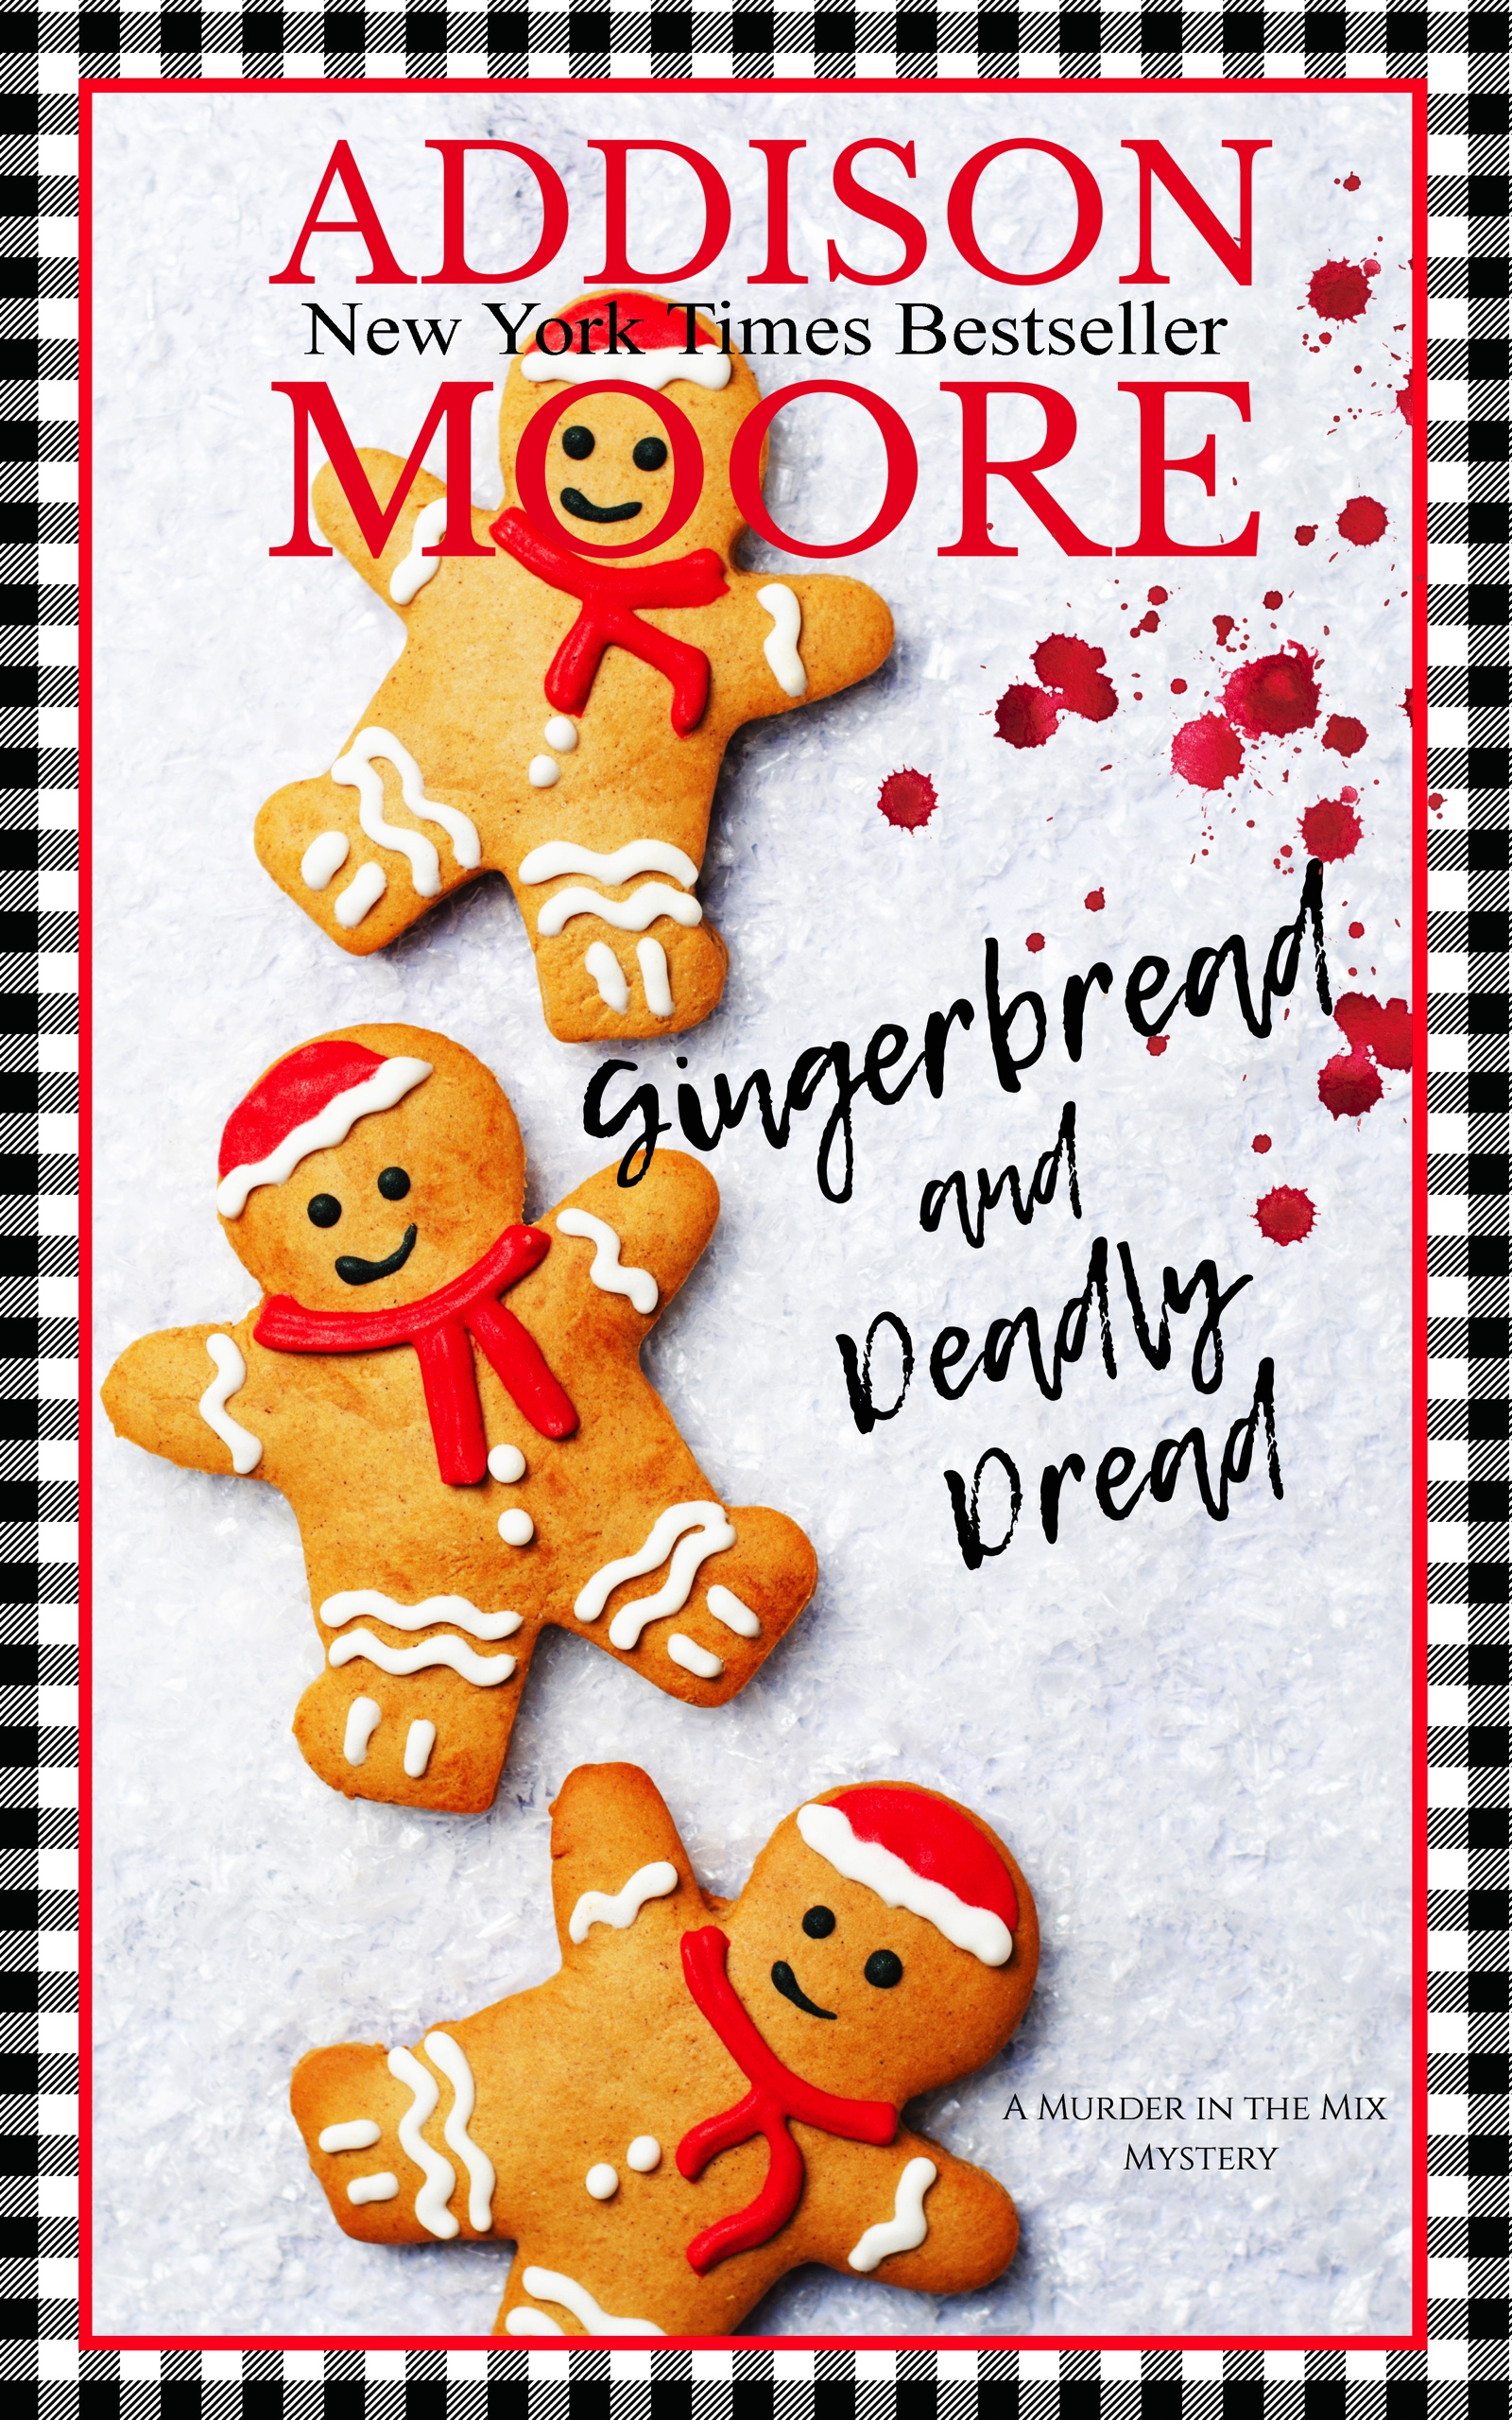 Gingerbread-and-Deadly-Dread-Kindle